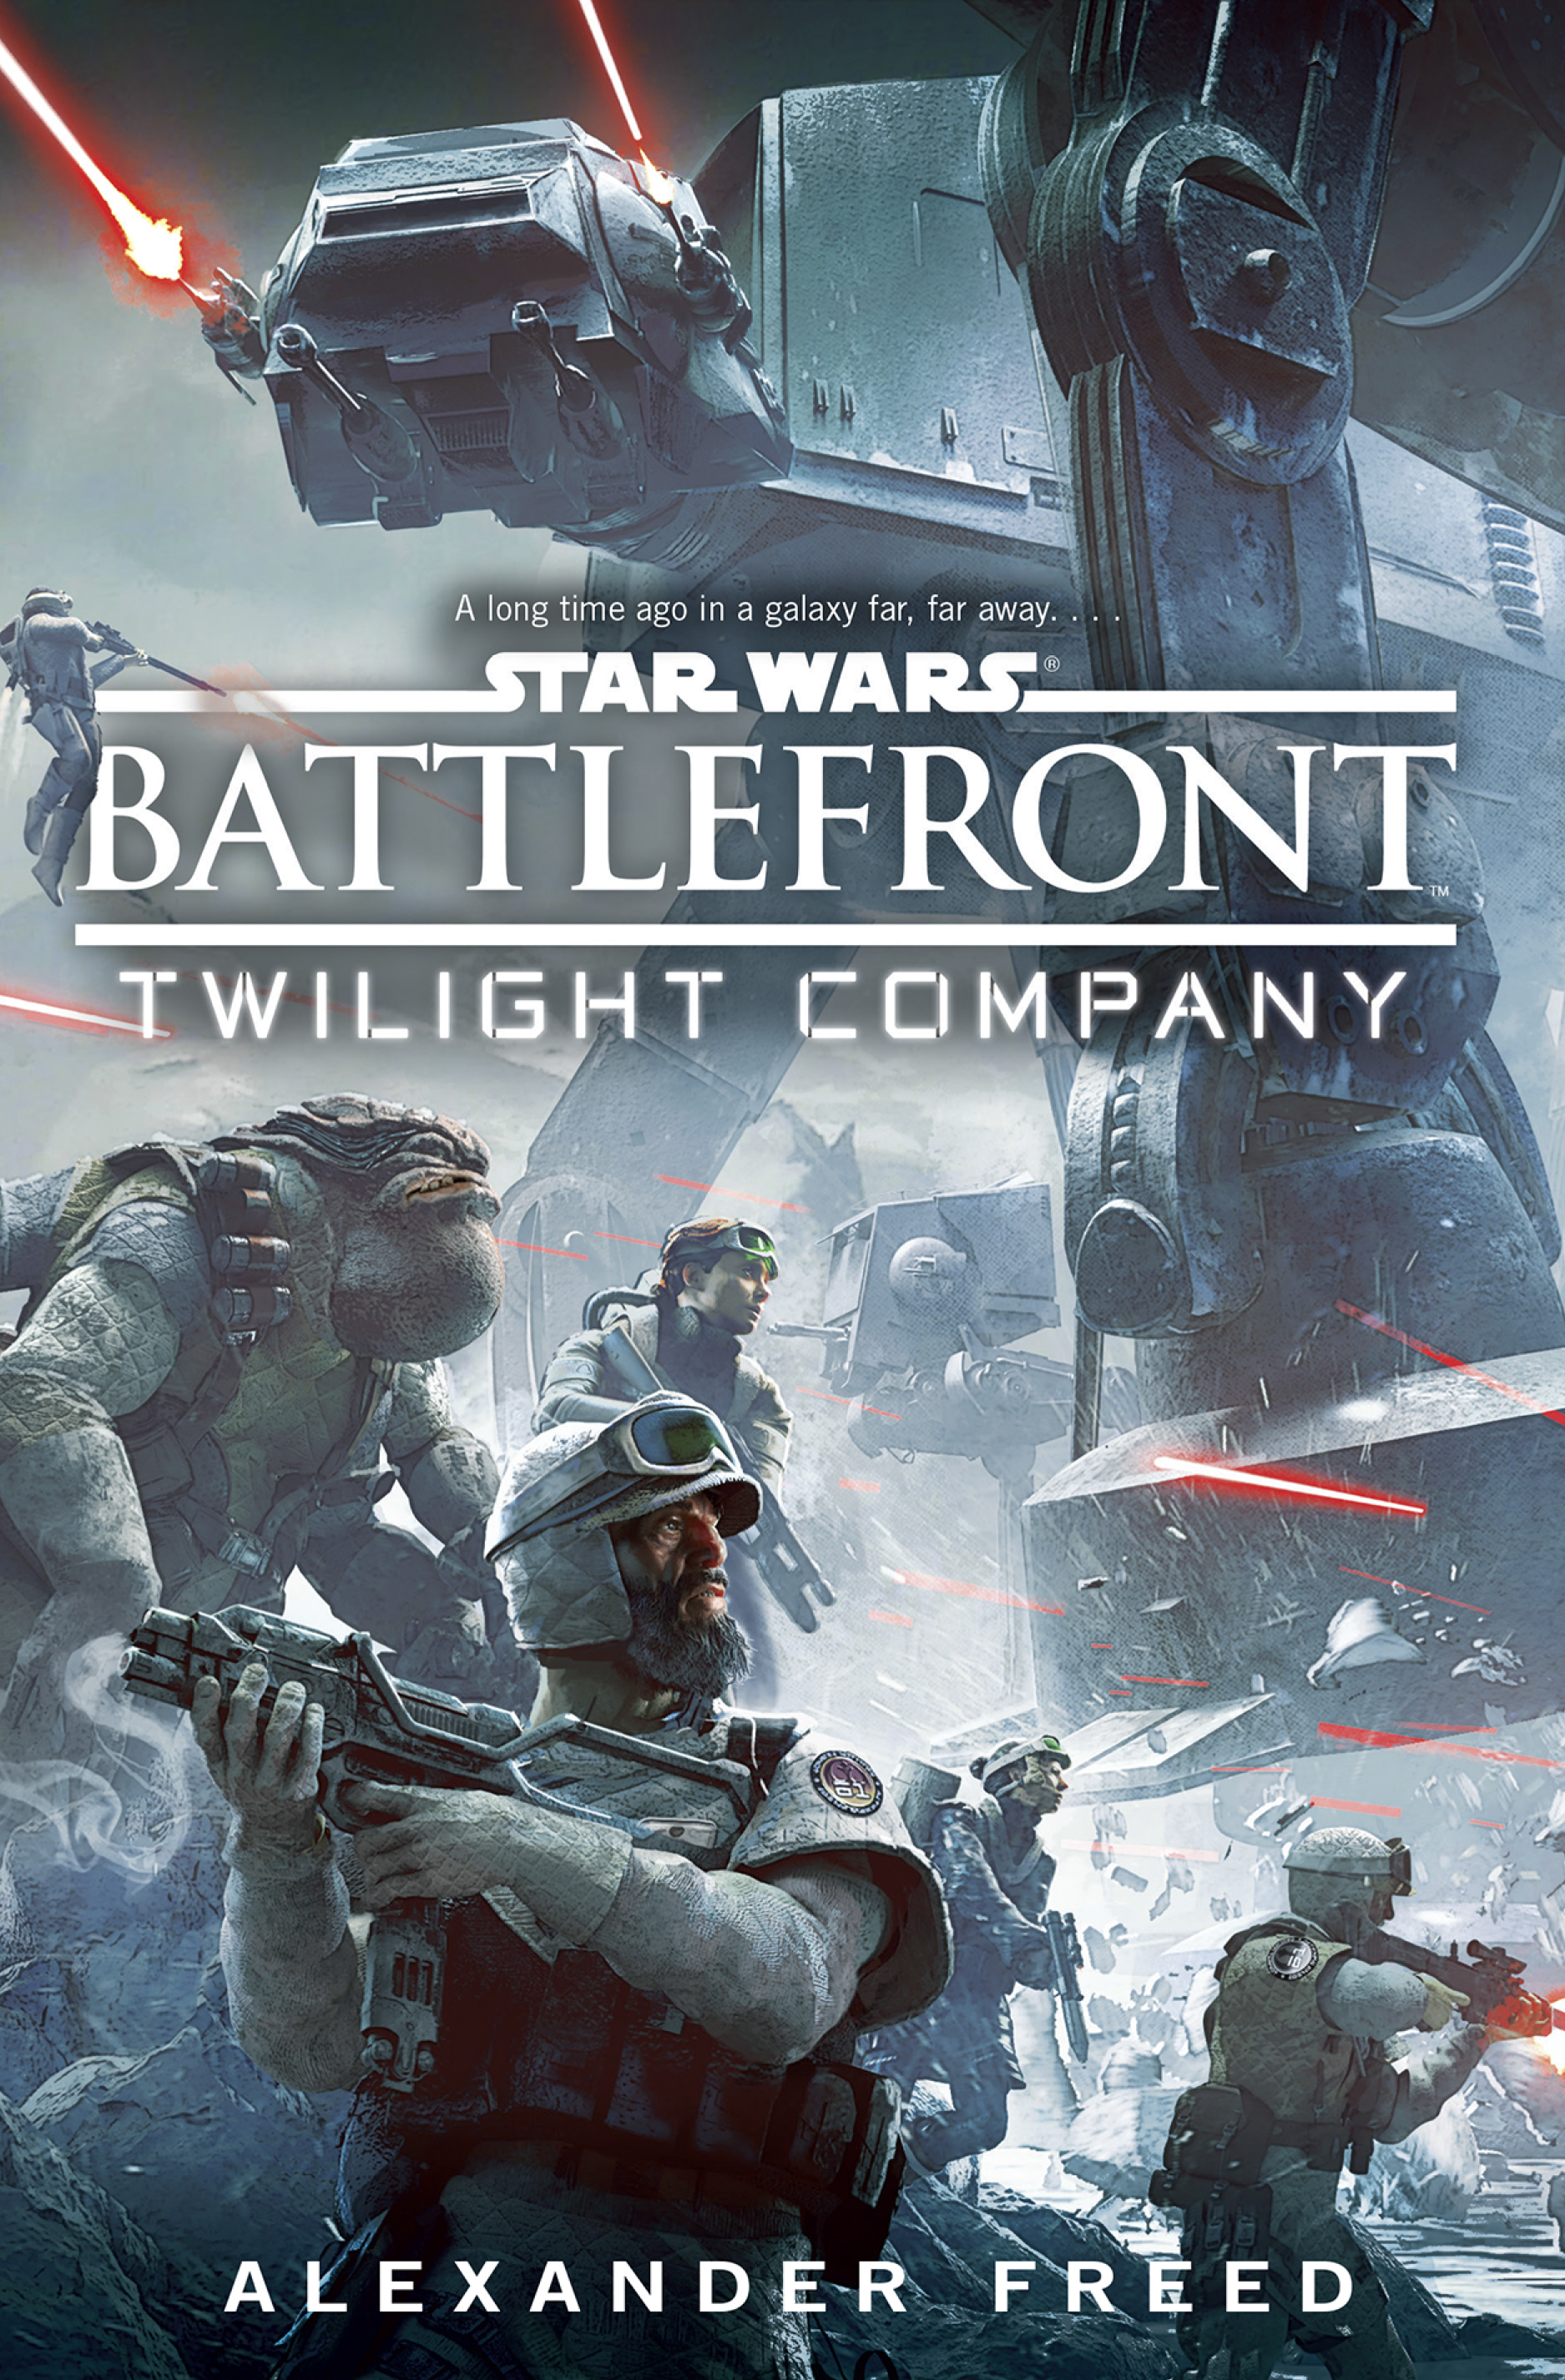 Friday Reads: Star Wars: Battlefront Twilight Company by Alexander Freed